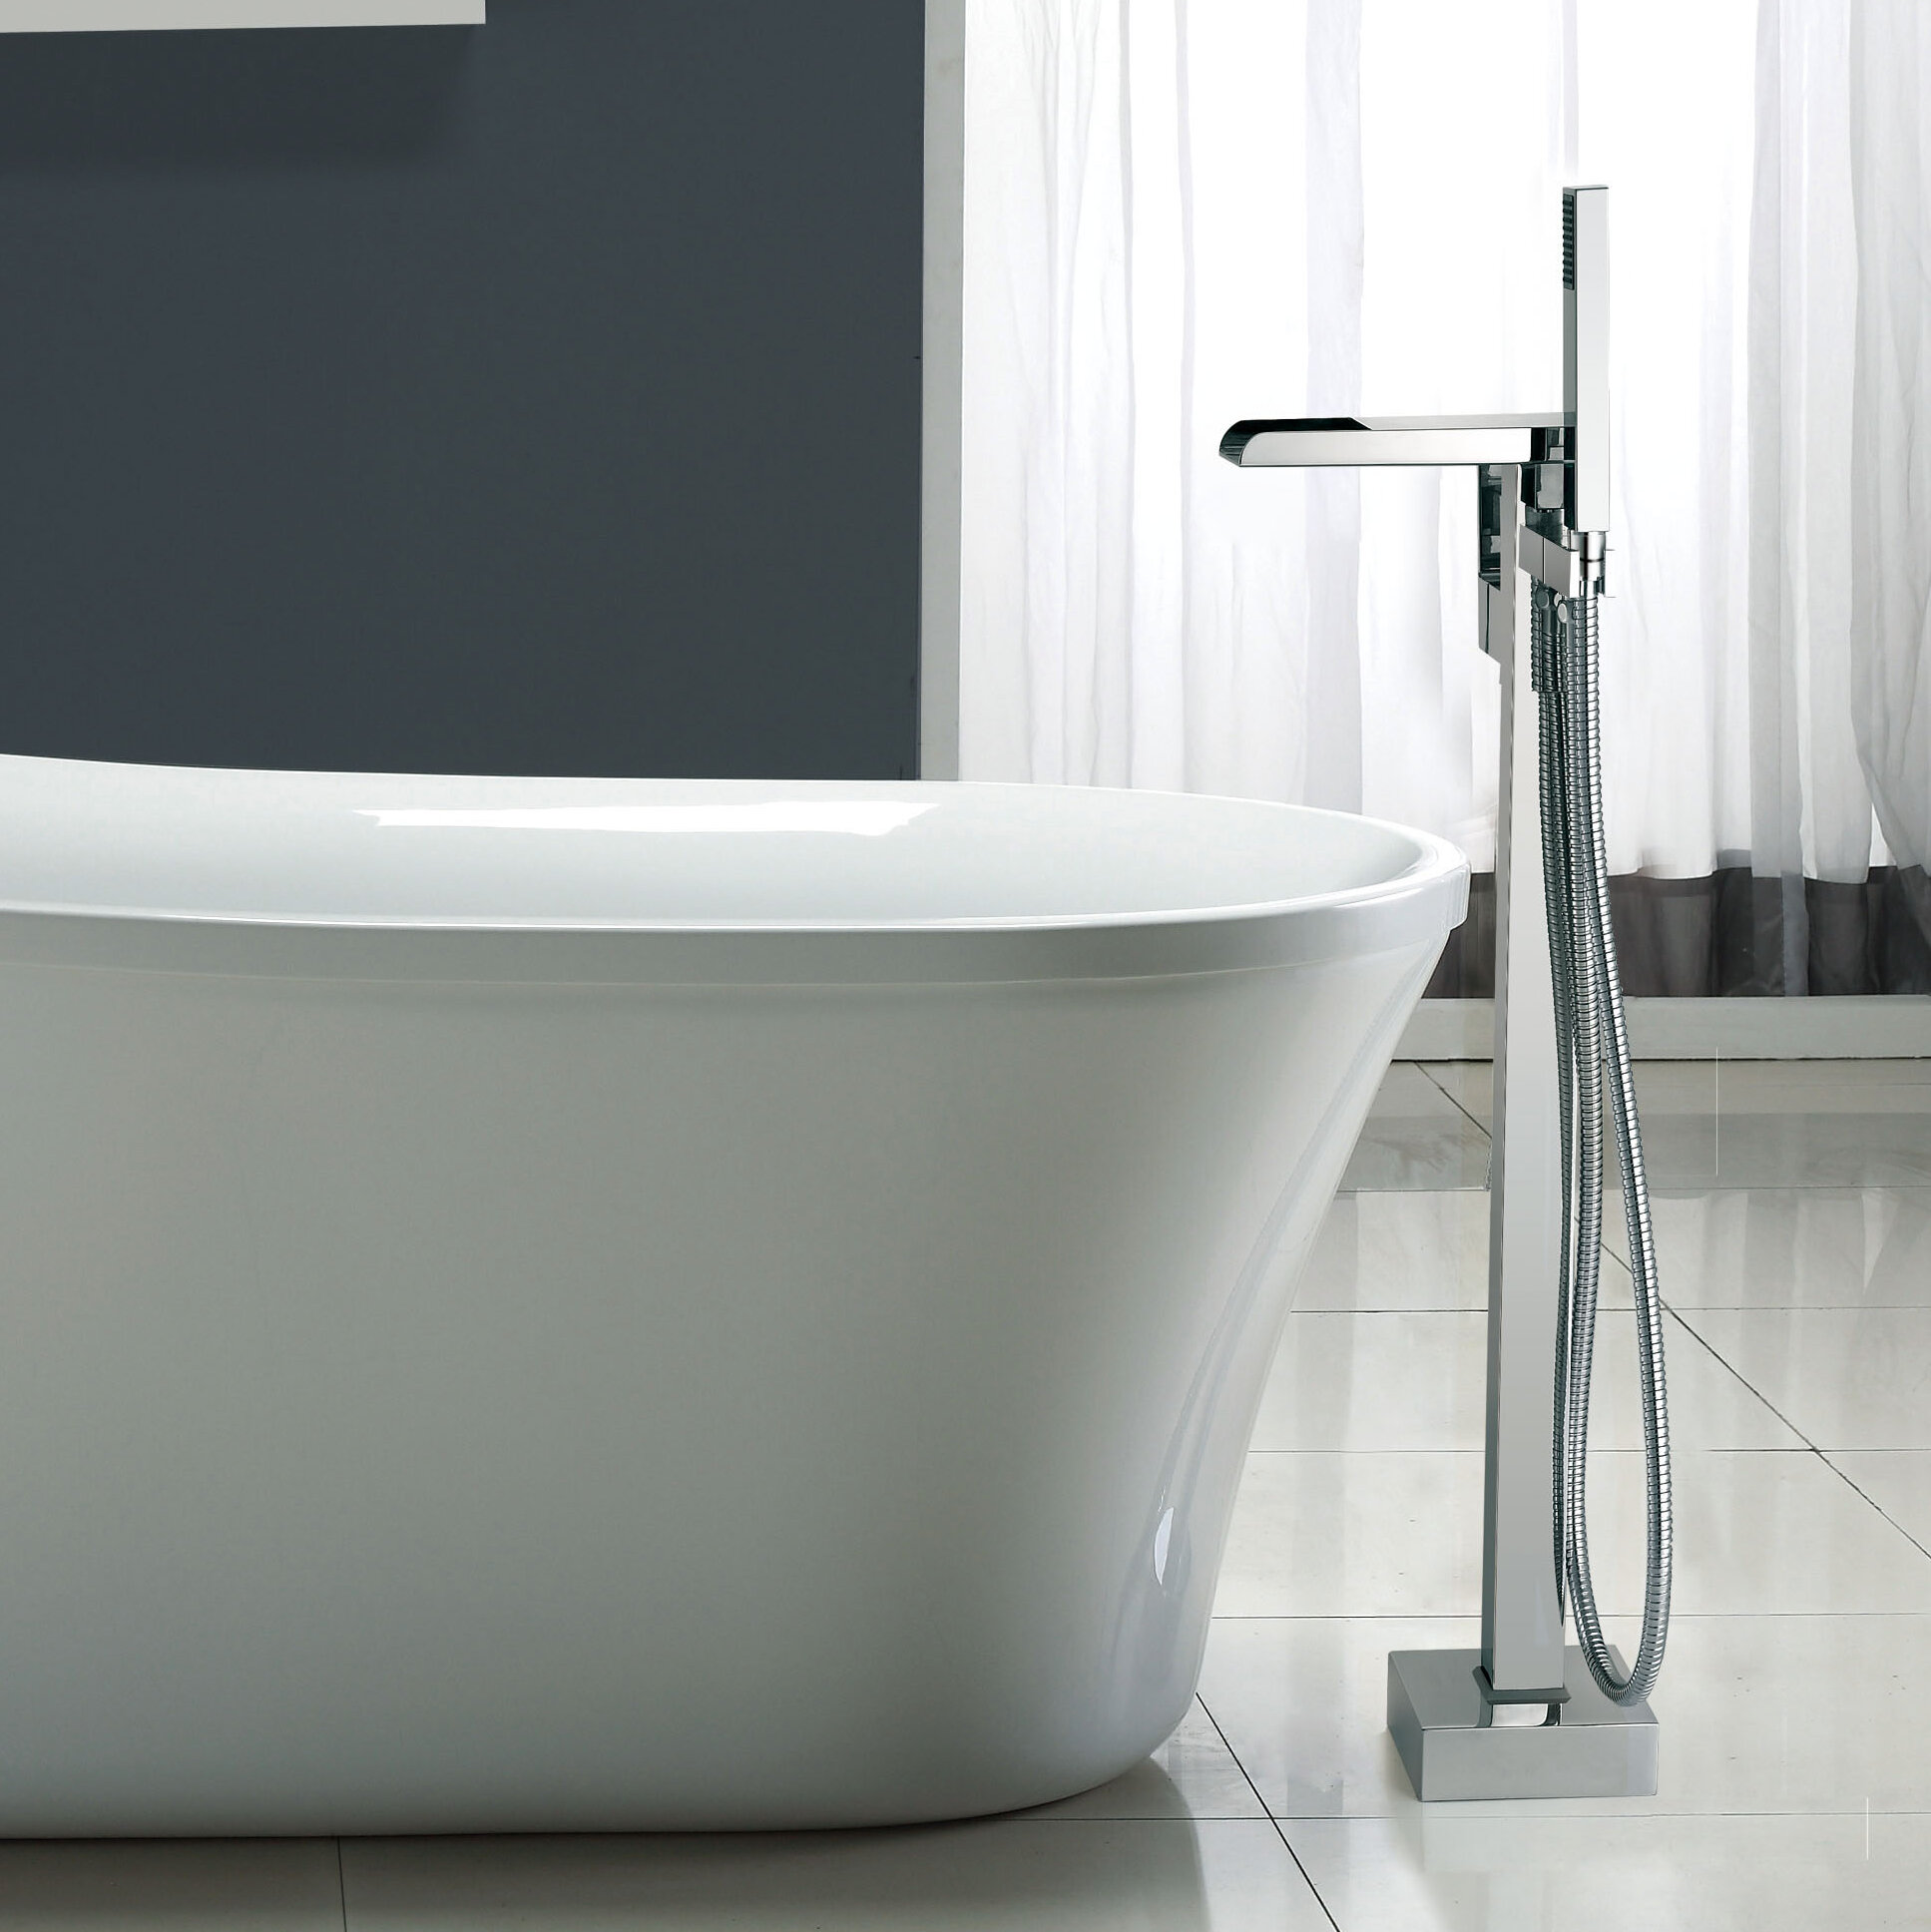 Ove Decors Infinity Floor Mounted Tub Faucet & Reviews